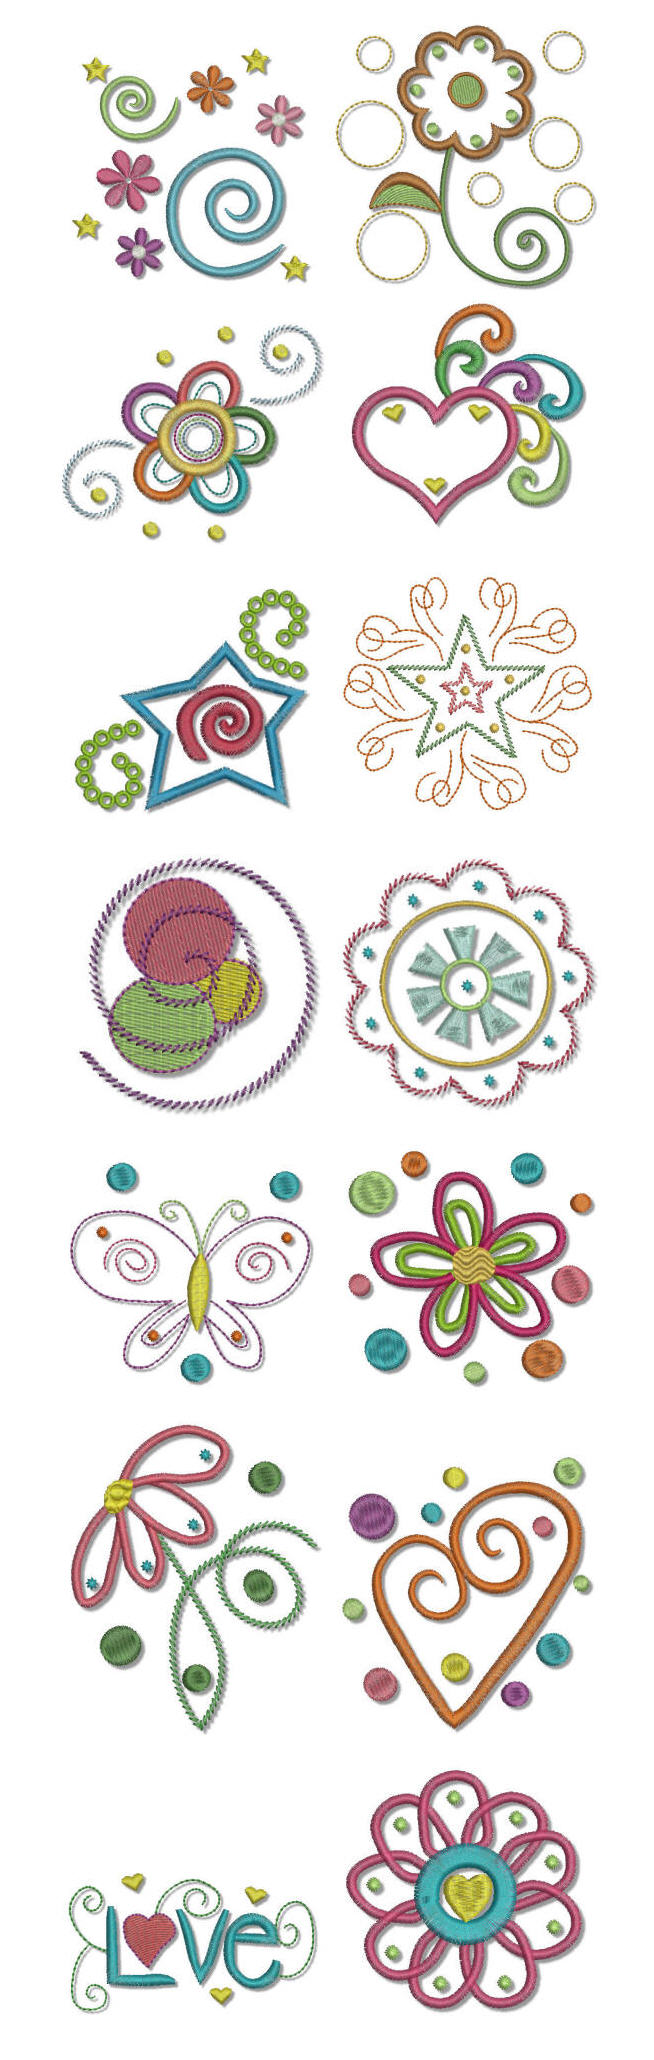 Embroidery Free Machine Embroidery Designs Dots N Doodles Too